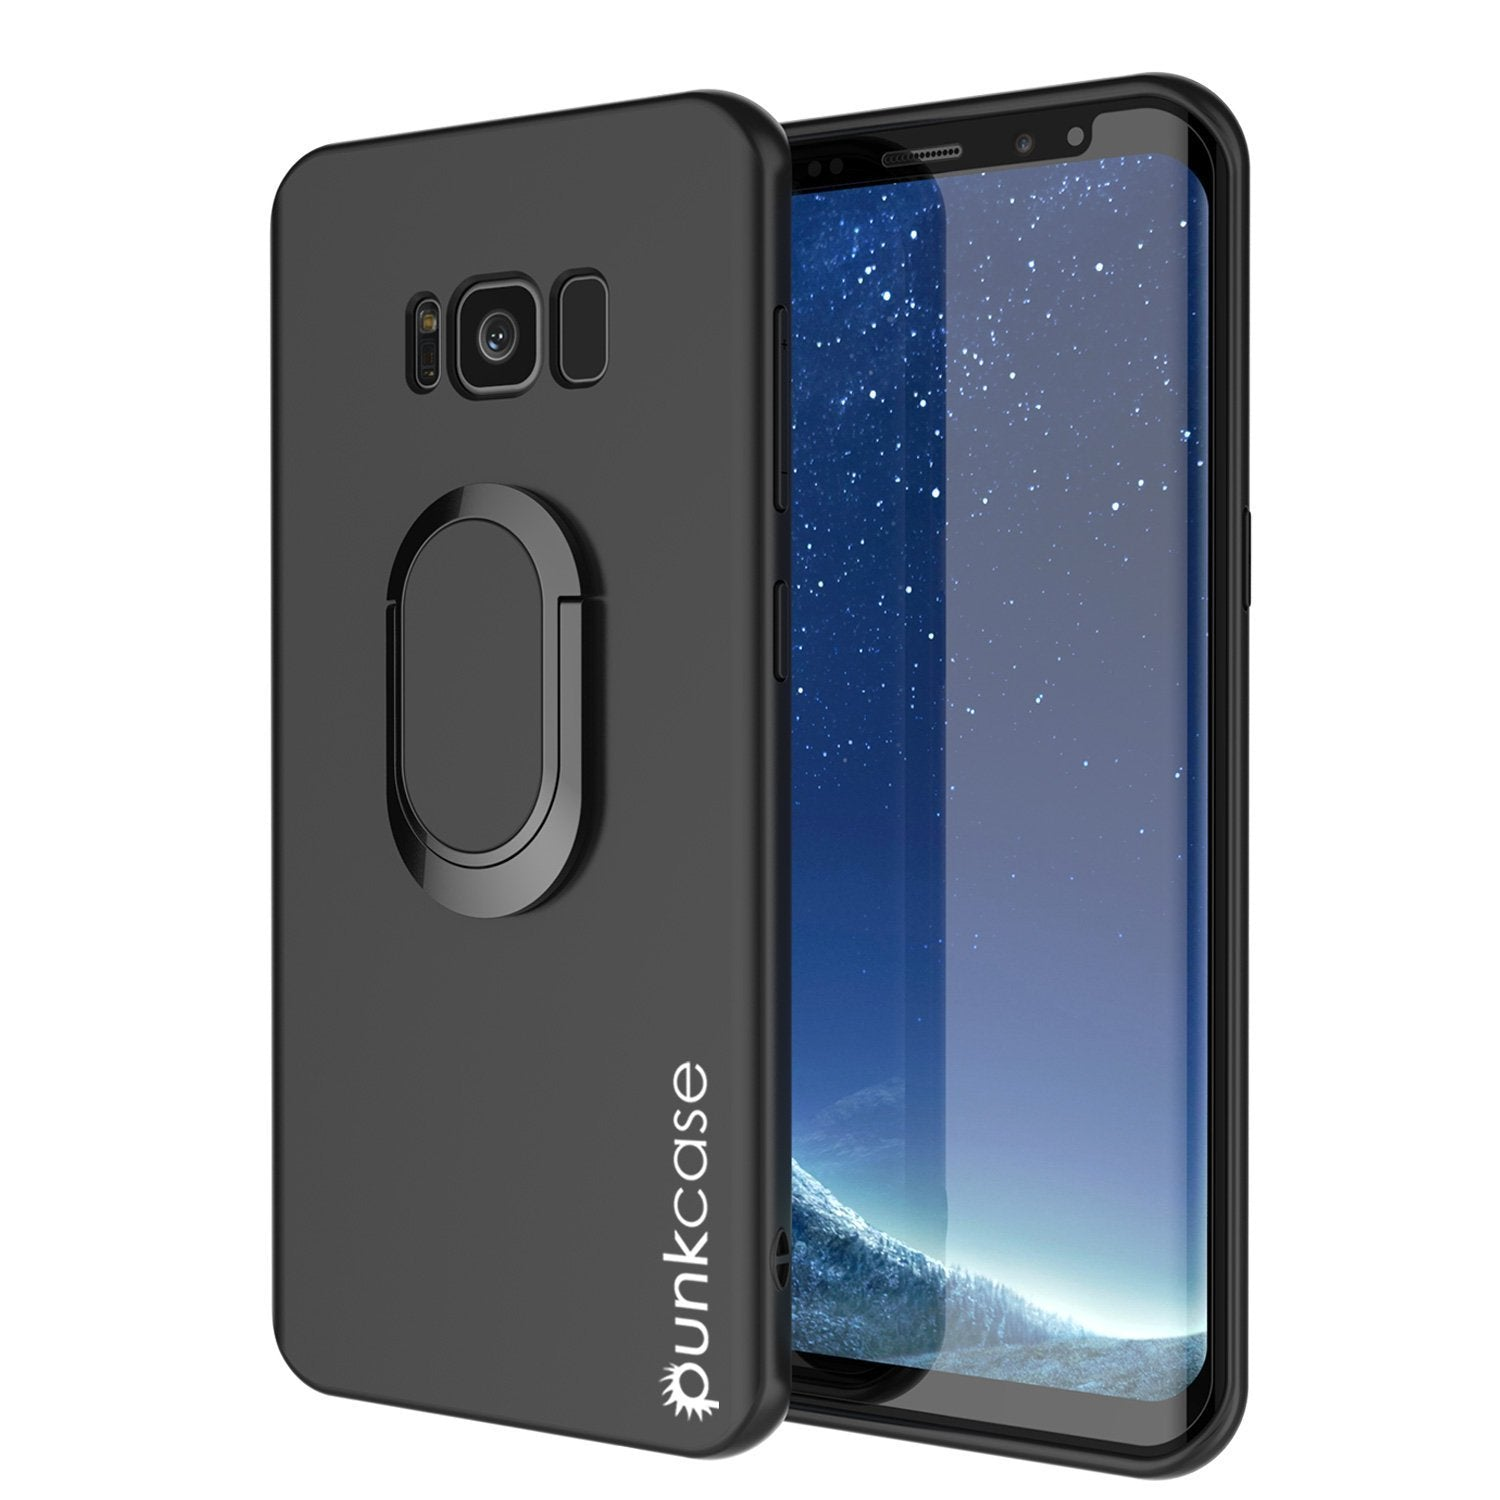 Galaxy S8 Case, Punkcase Magnetix Protective TPU Cover W/ Kickstand, Screen Protector [Black]